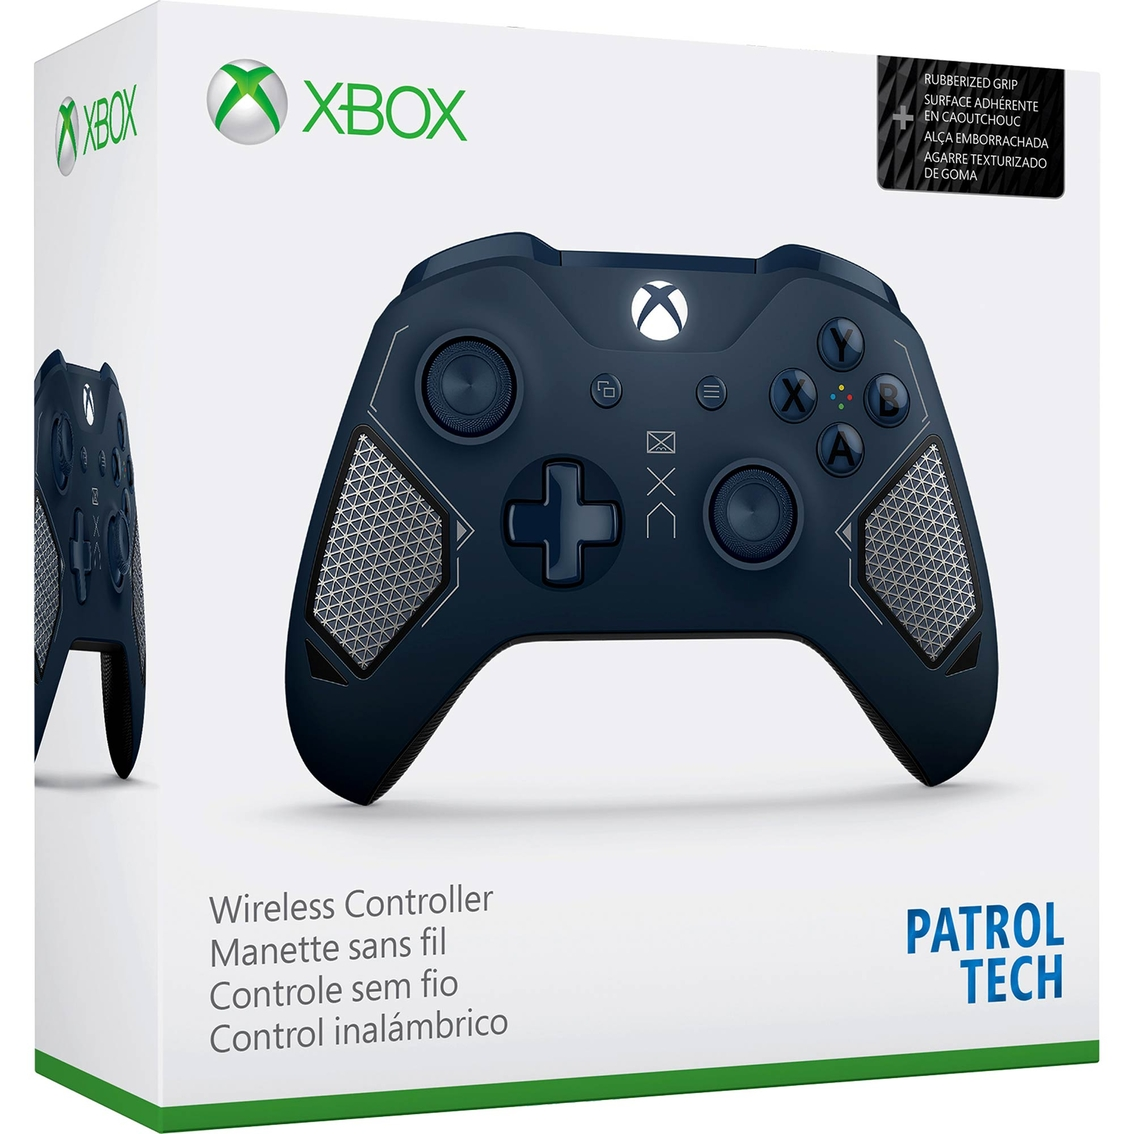 Xbox One S Wireless Controller Patrol Tech Special Edition